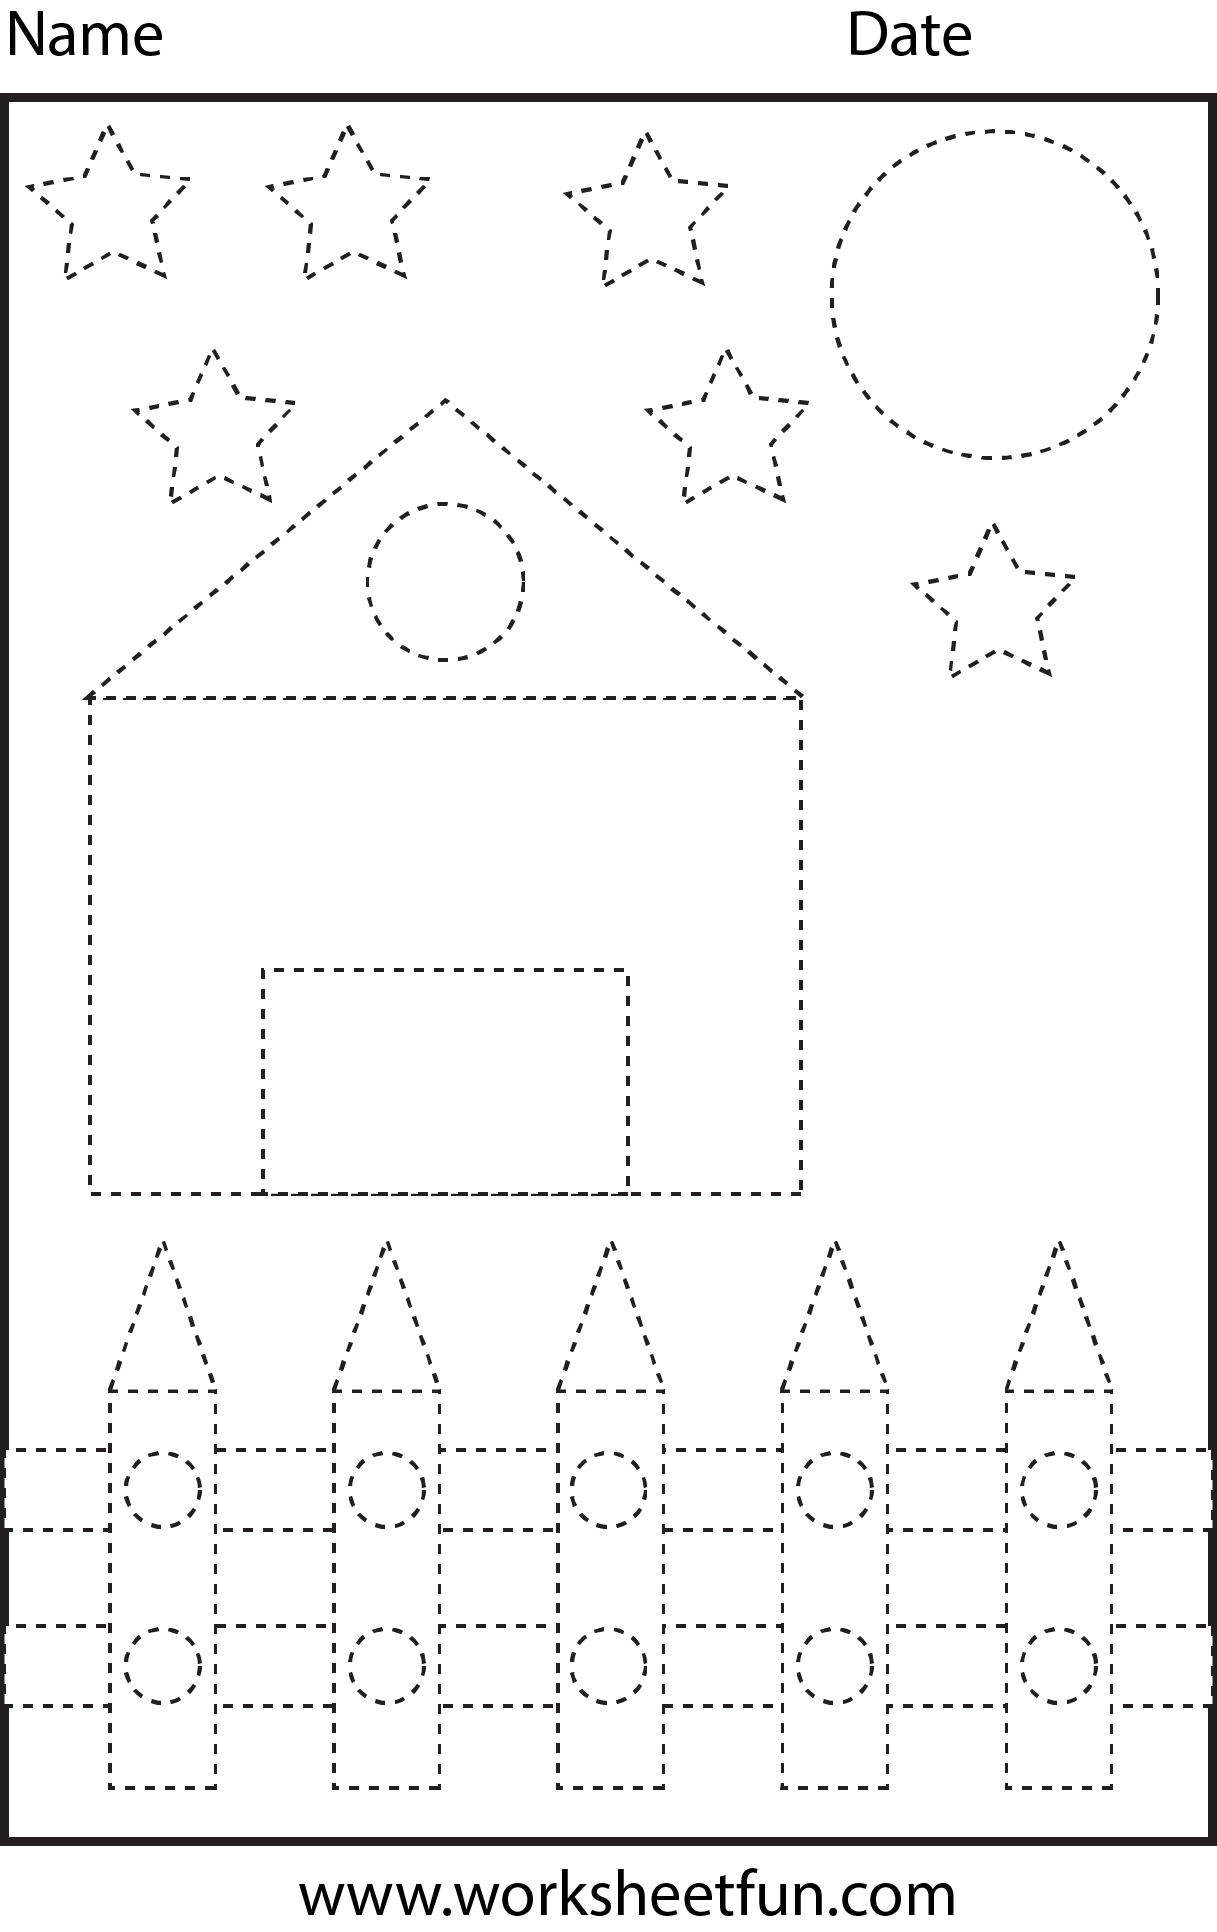 Picture Tracing Shapes 1 Worksheet Free Printable Worksheets Worksheetfun